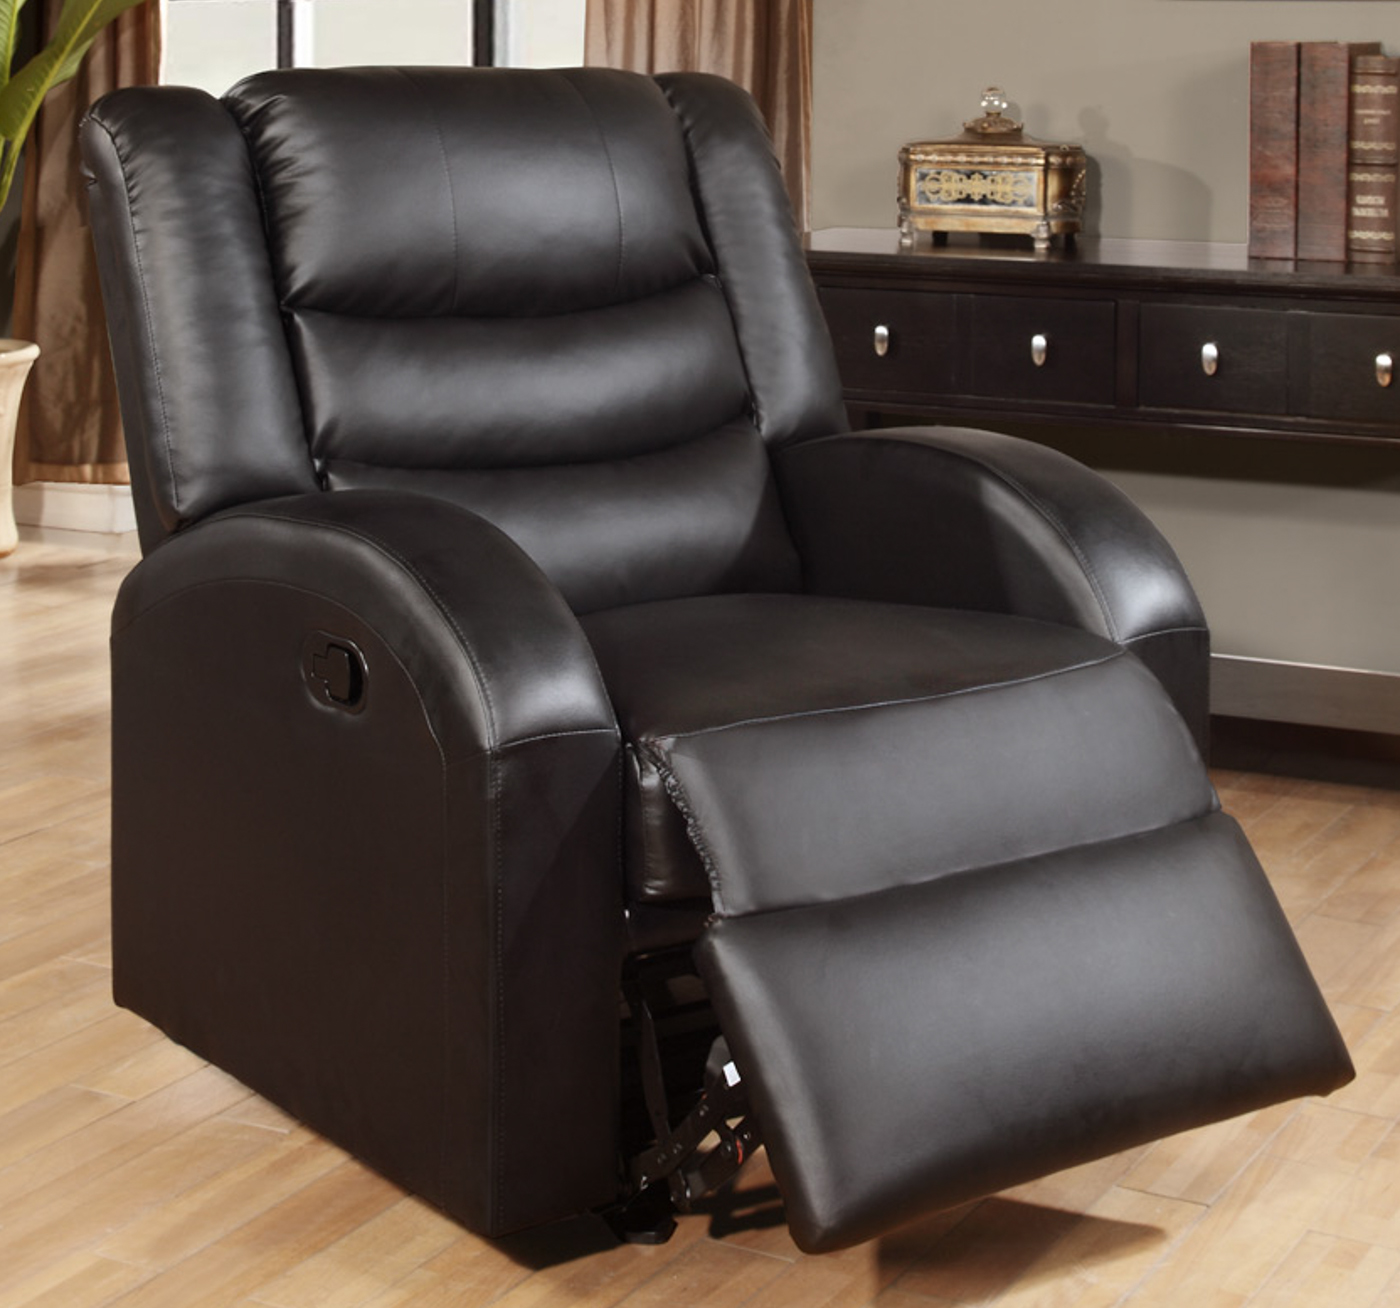 Black Leather Sofa With Recliner: Black Leather Rocker Recliner Chair